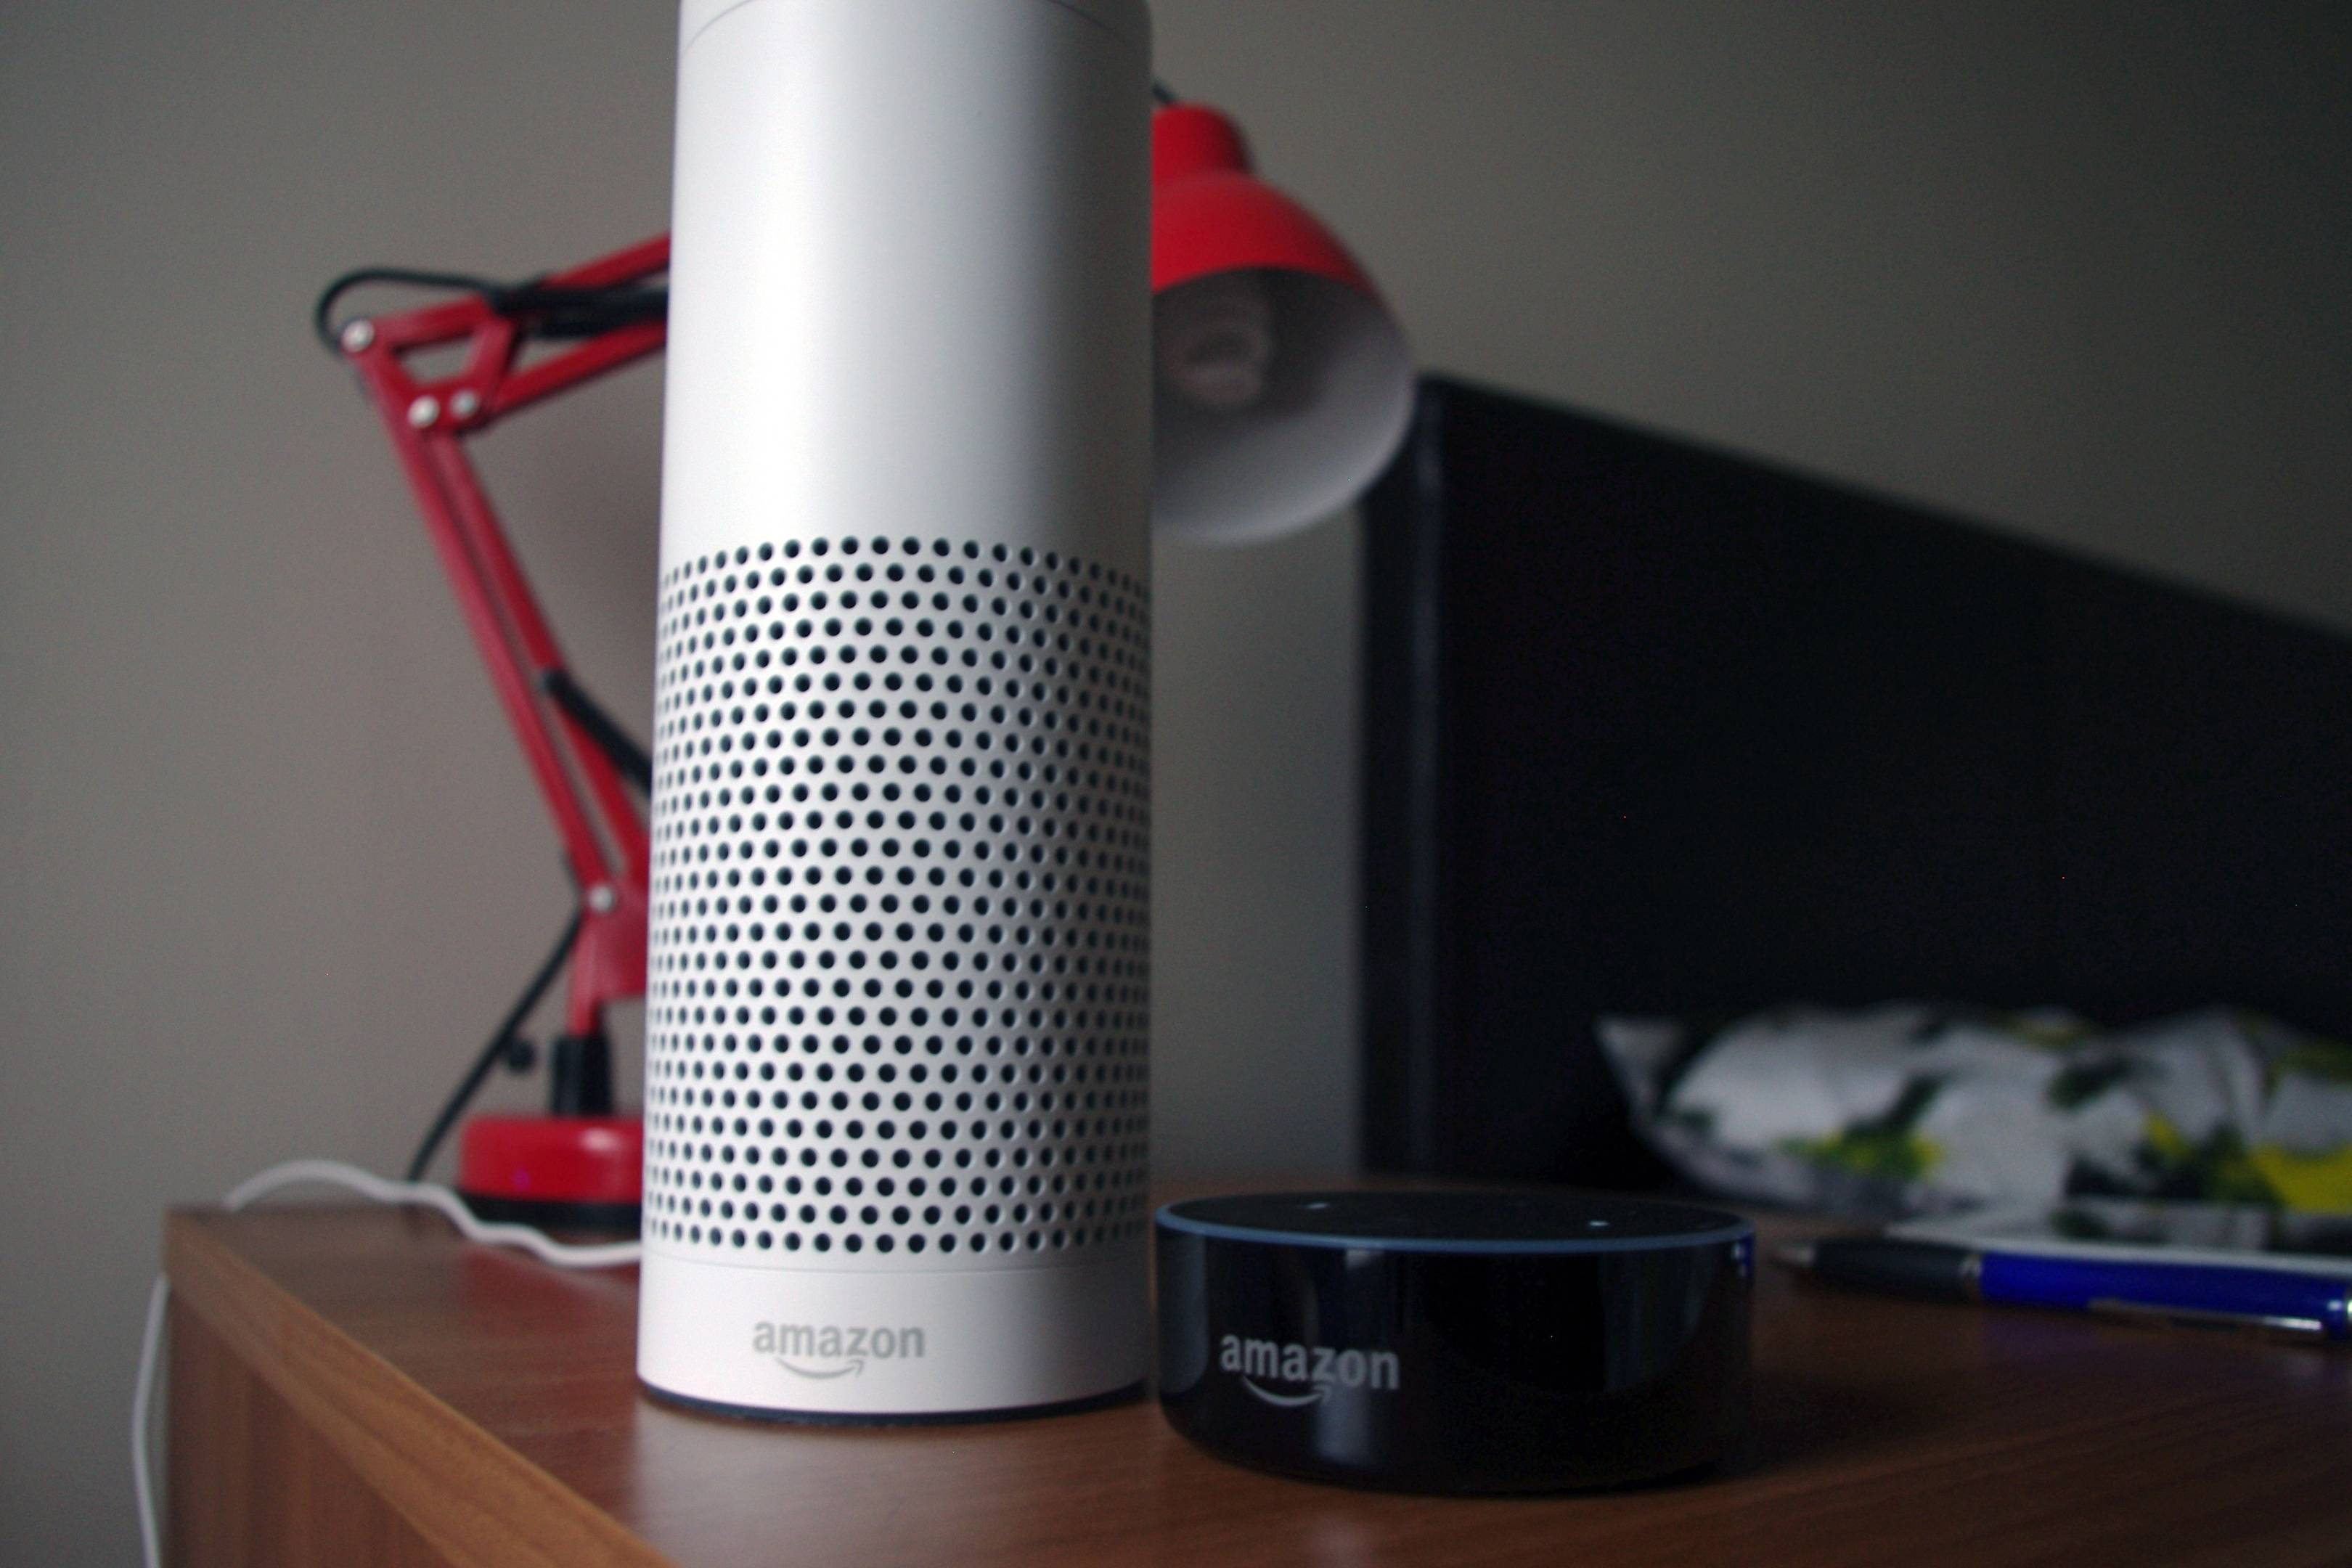 amazon echo and amazon dot review alexa connects well to devices